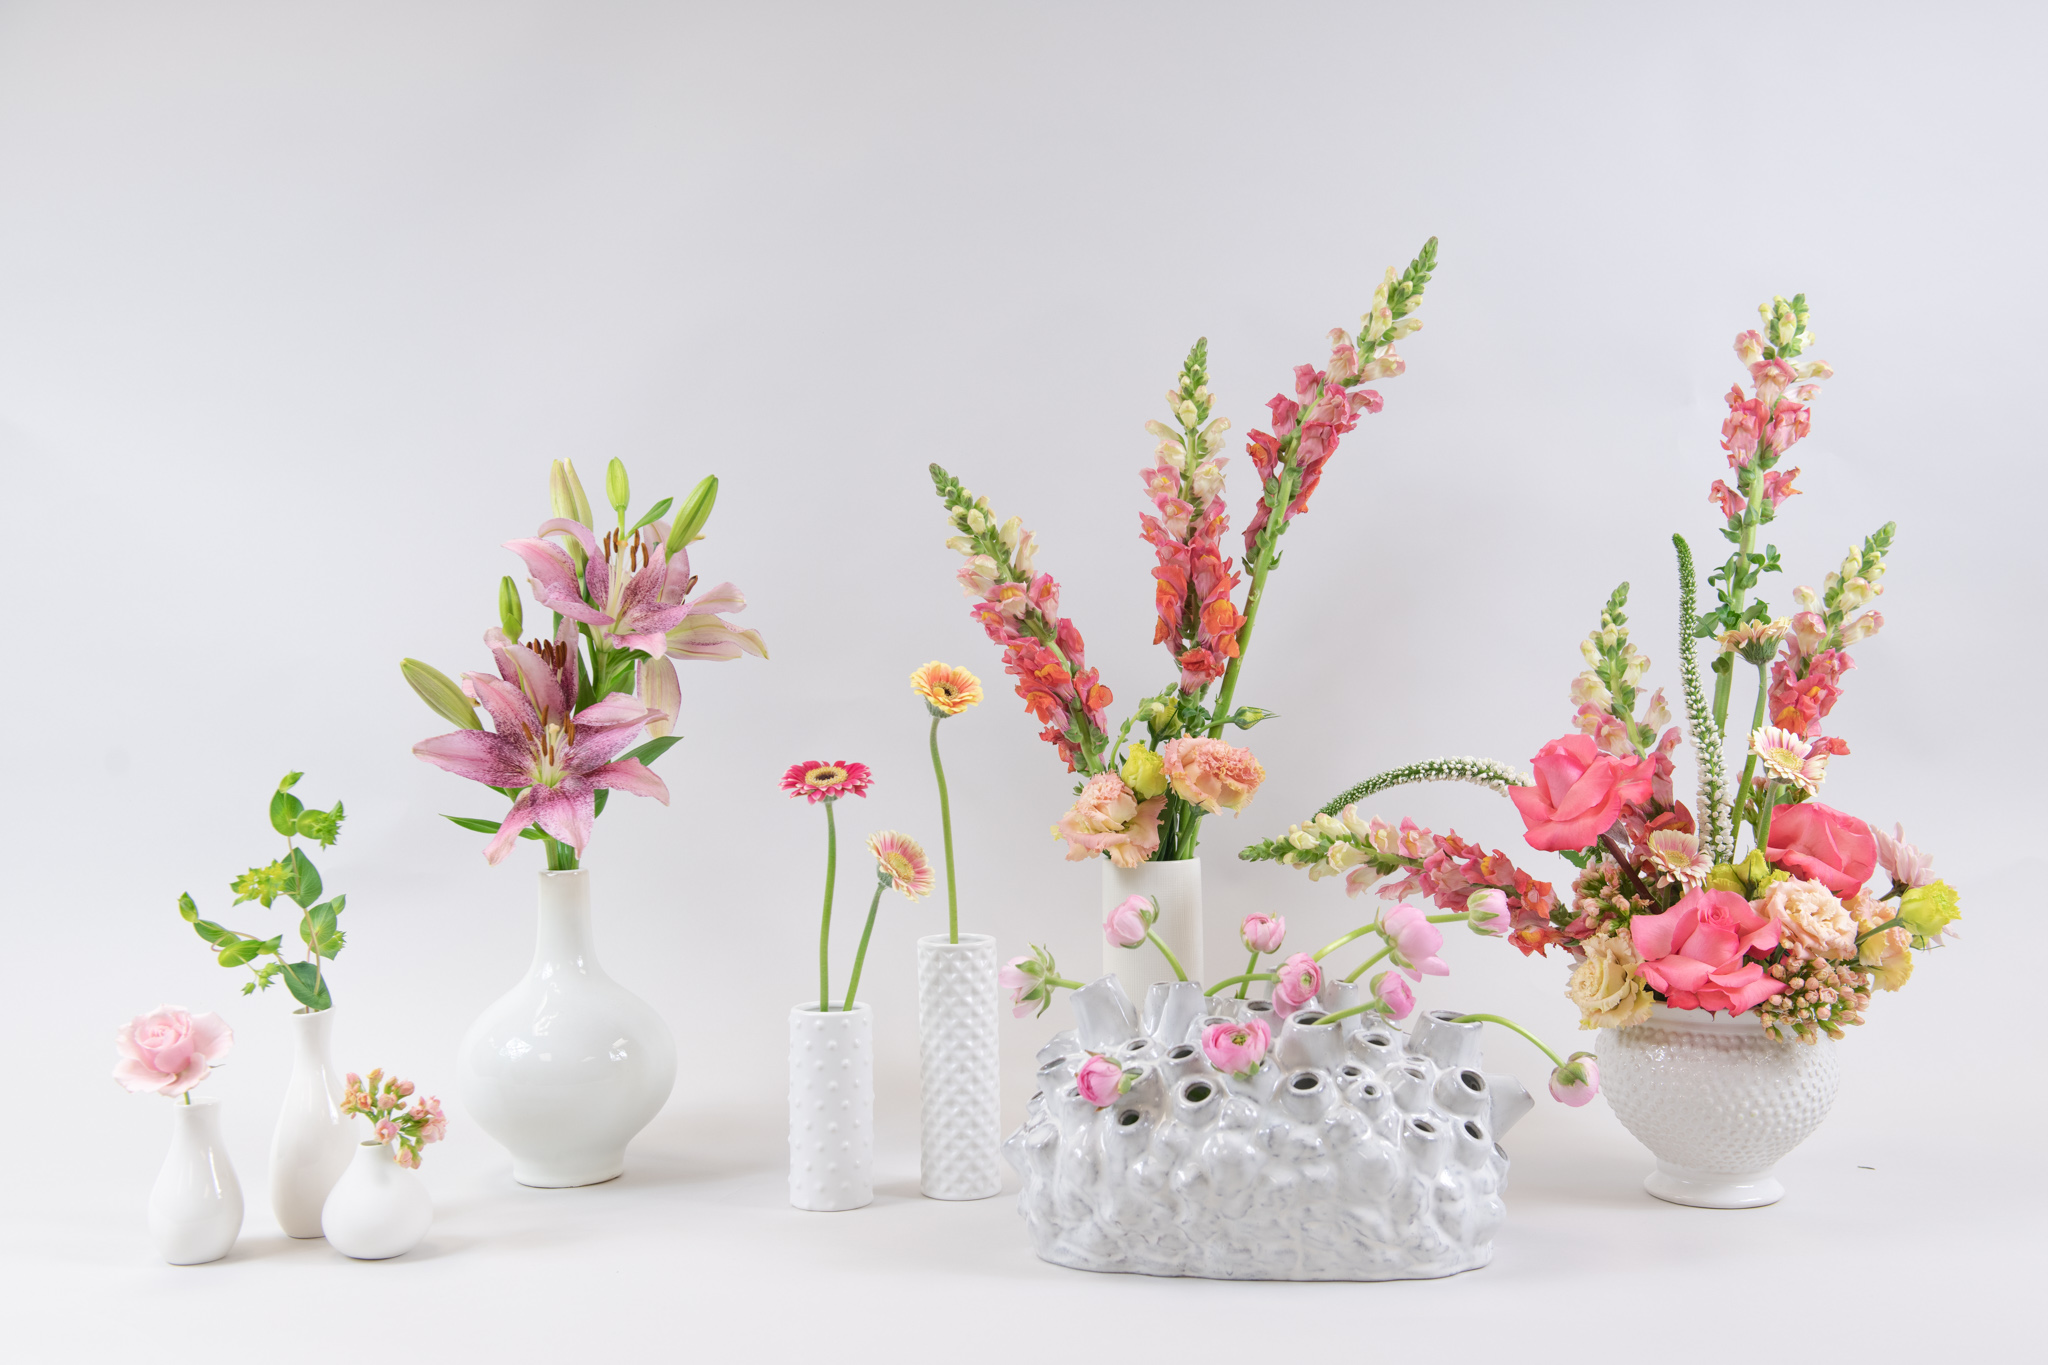 Create Gorgeous Decor This Galentine's Day Using Fresh Cut Flowers